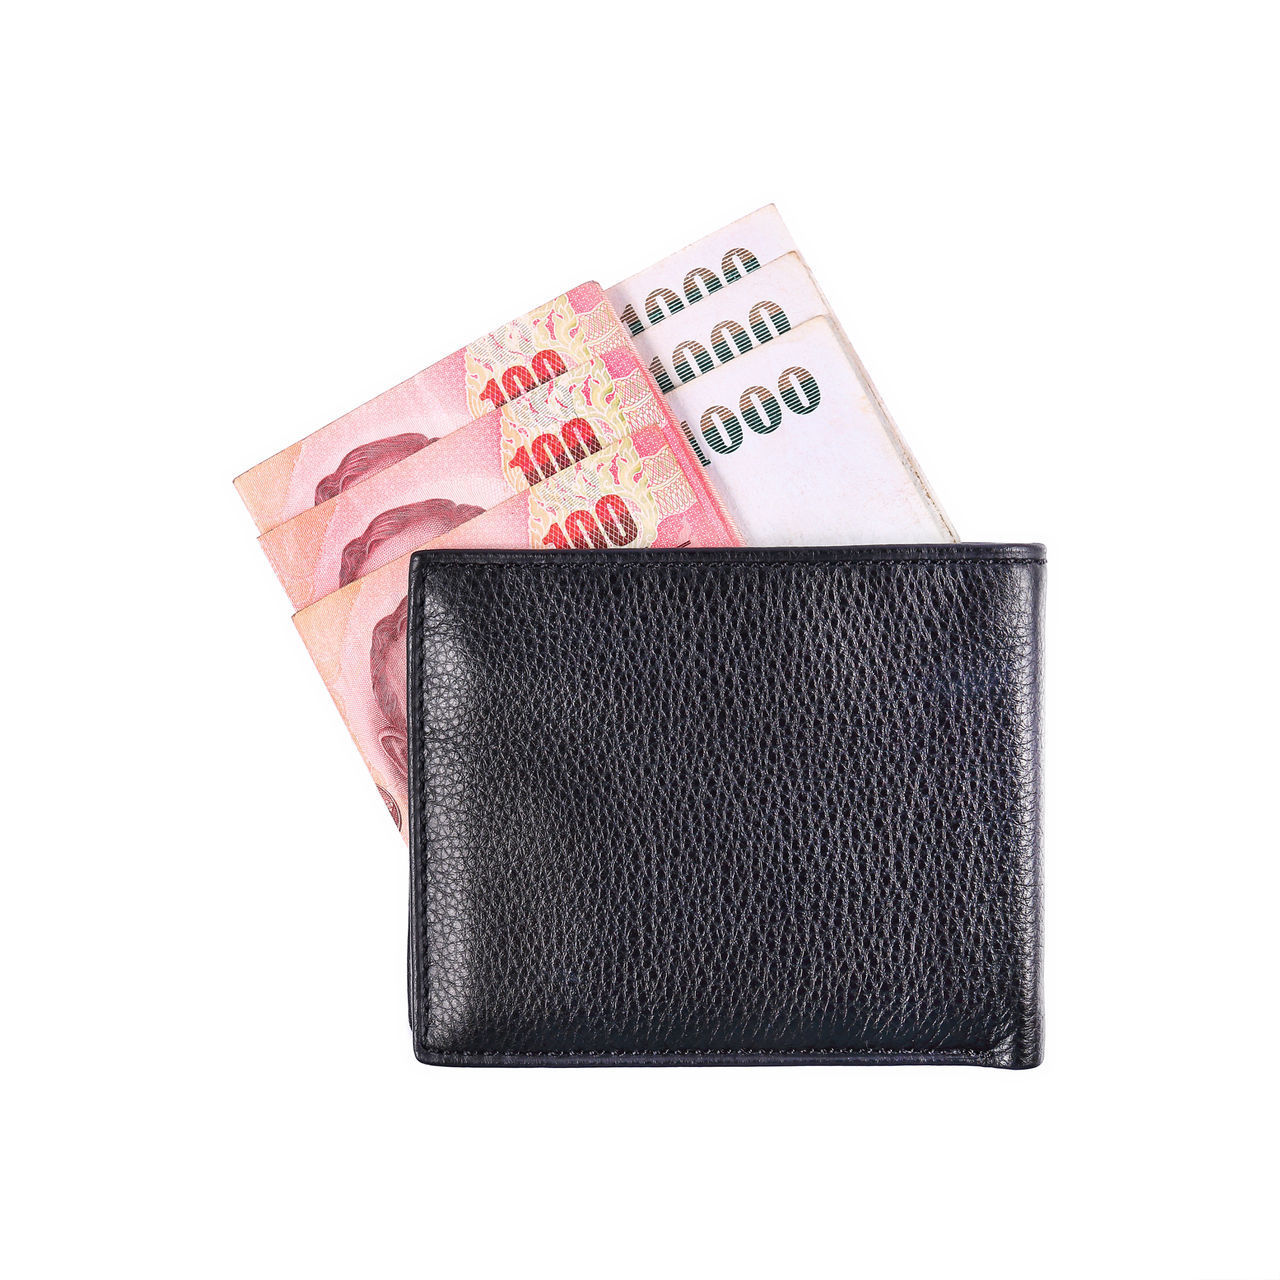 currency, finance, business, wealth, paper currency, studio shot, white background, cut out, indoors, close-up, wallet, savings, pocket, no people, leather, number, success, copy space, single object, making money